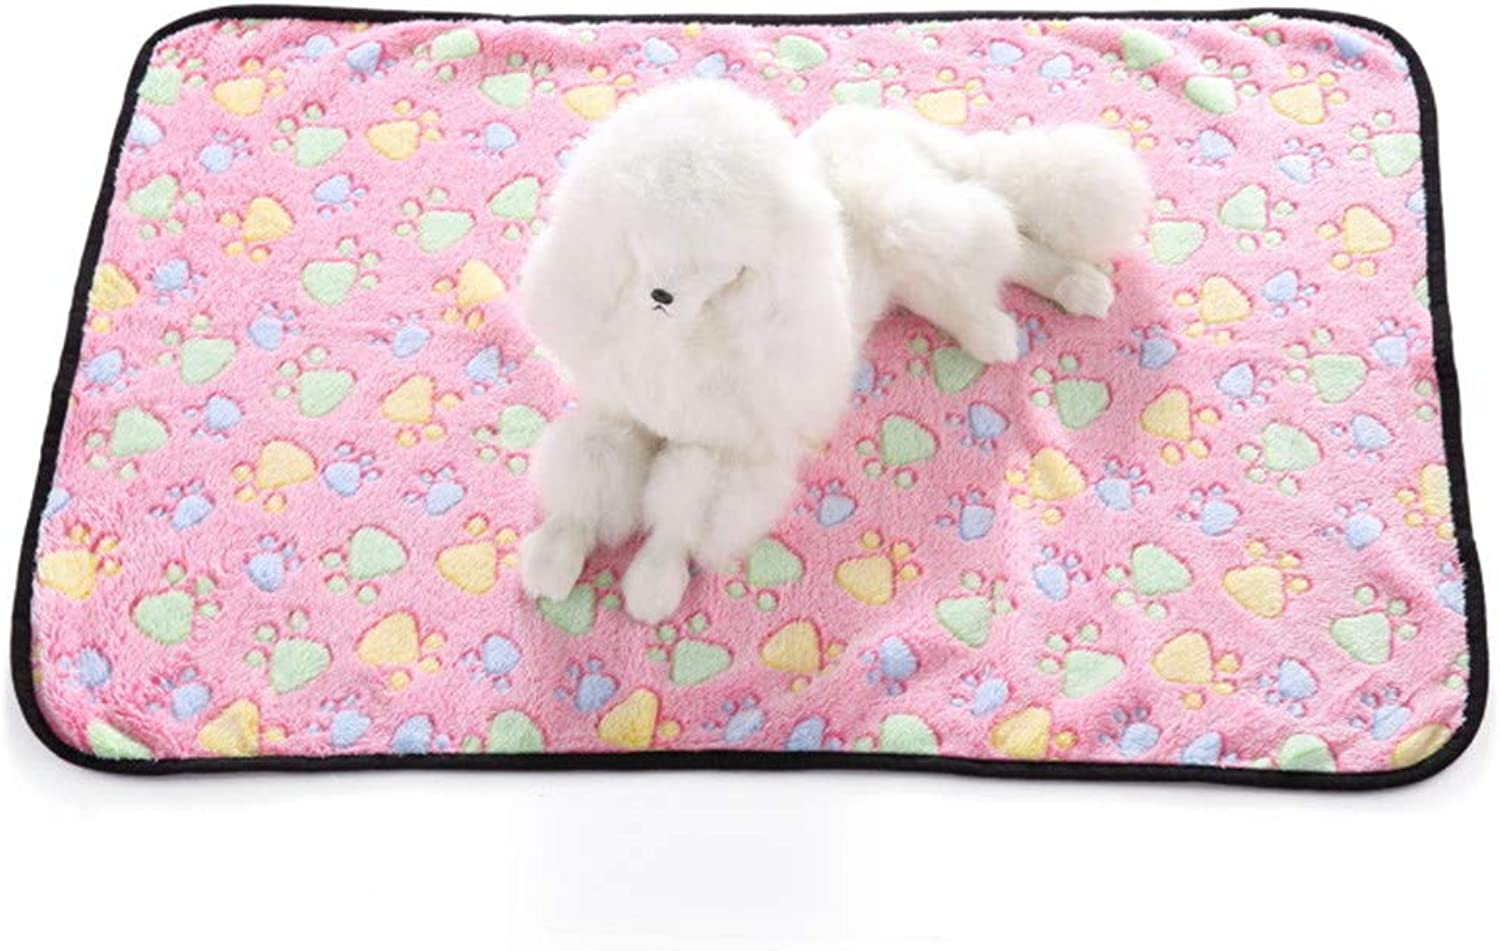 Dog Blanket Super Soft and Fluffy Premium Cat Puppy Throw Blanket, Appealing and Cute Paw Prints Design,B,M